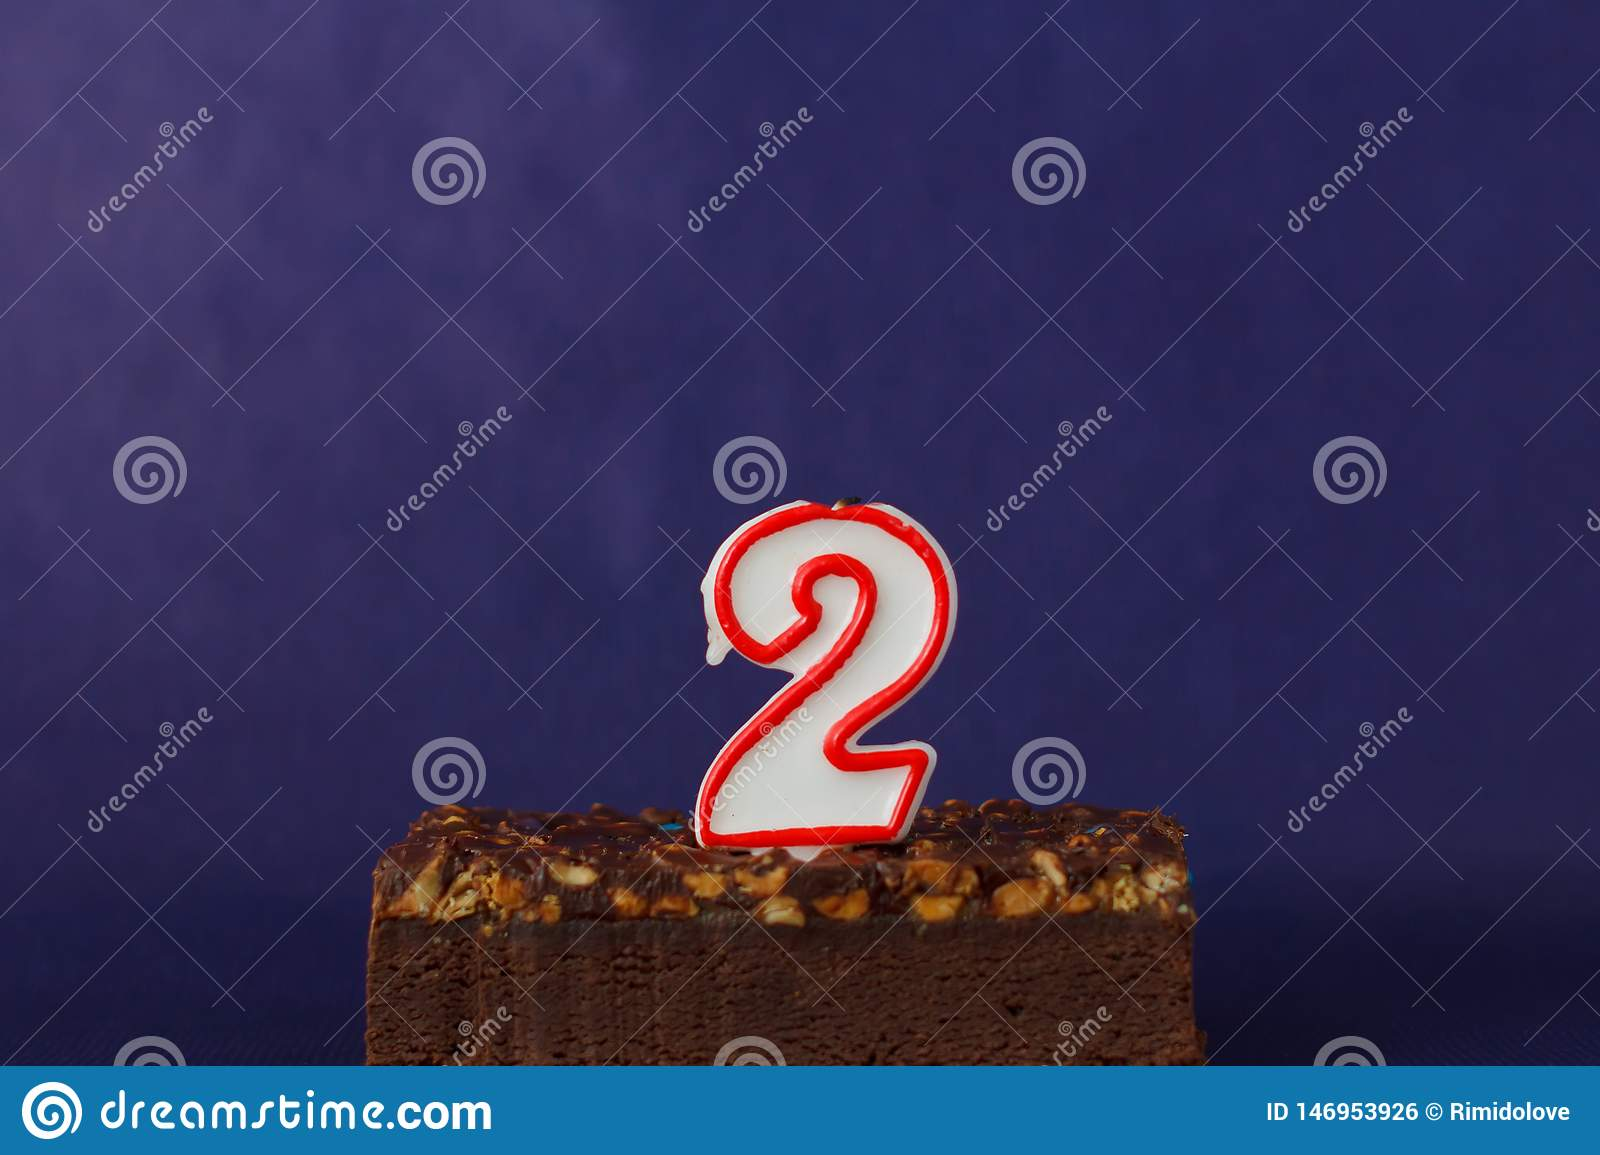 Happy Birthday Brownie Cake with Peanuts, Salted Caramel and Unlighted Candles on the Violet Background. Copy Space for Text.